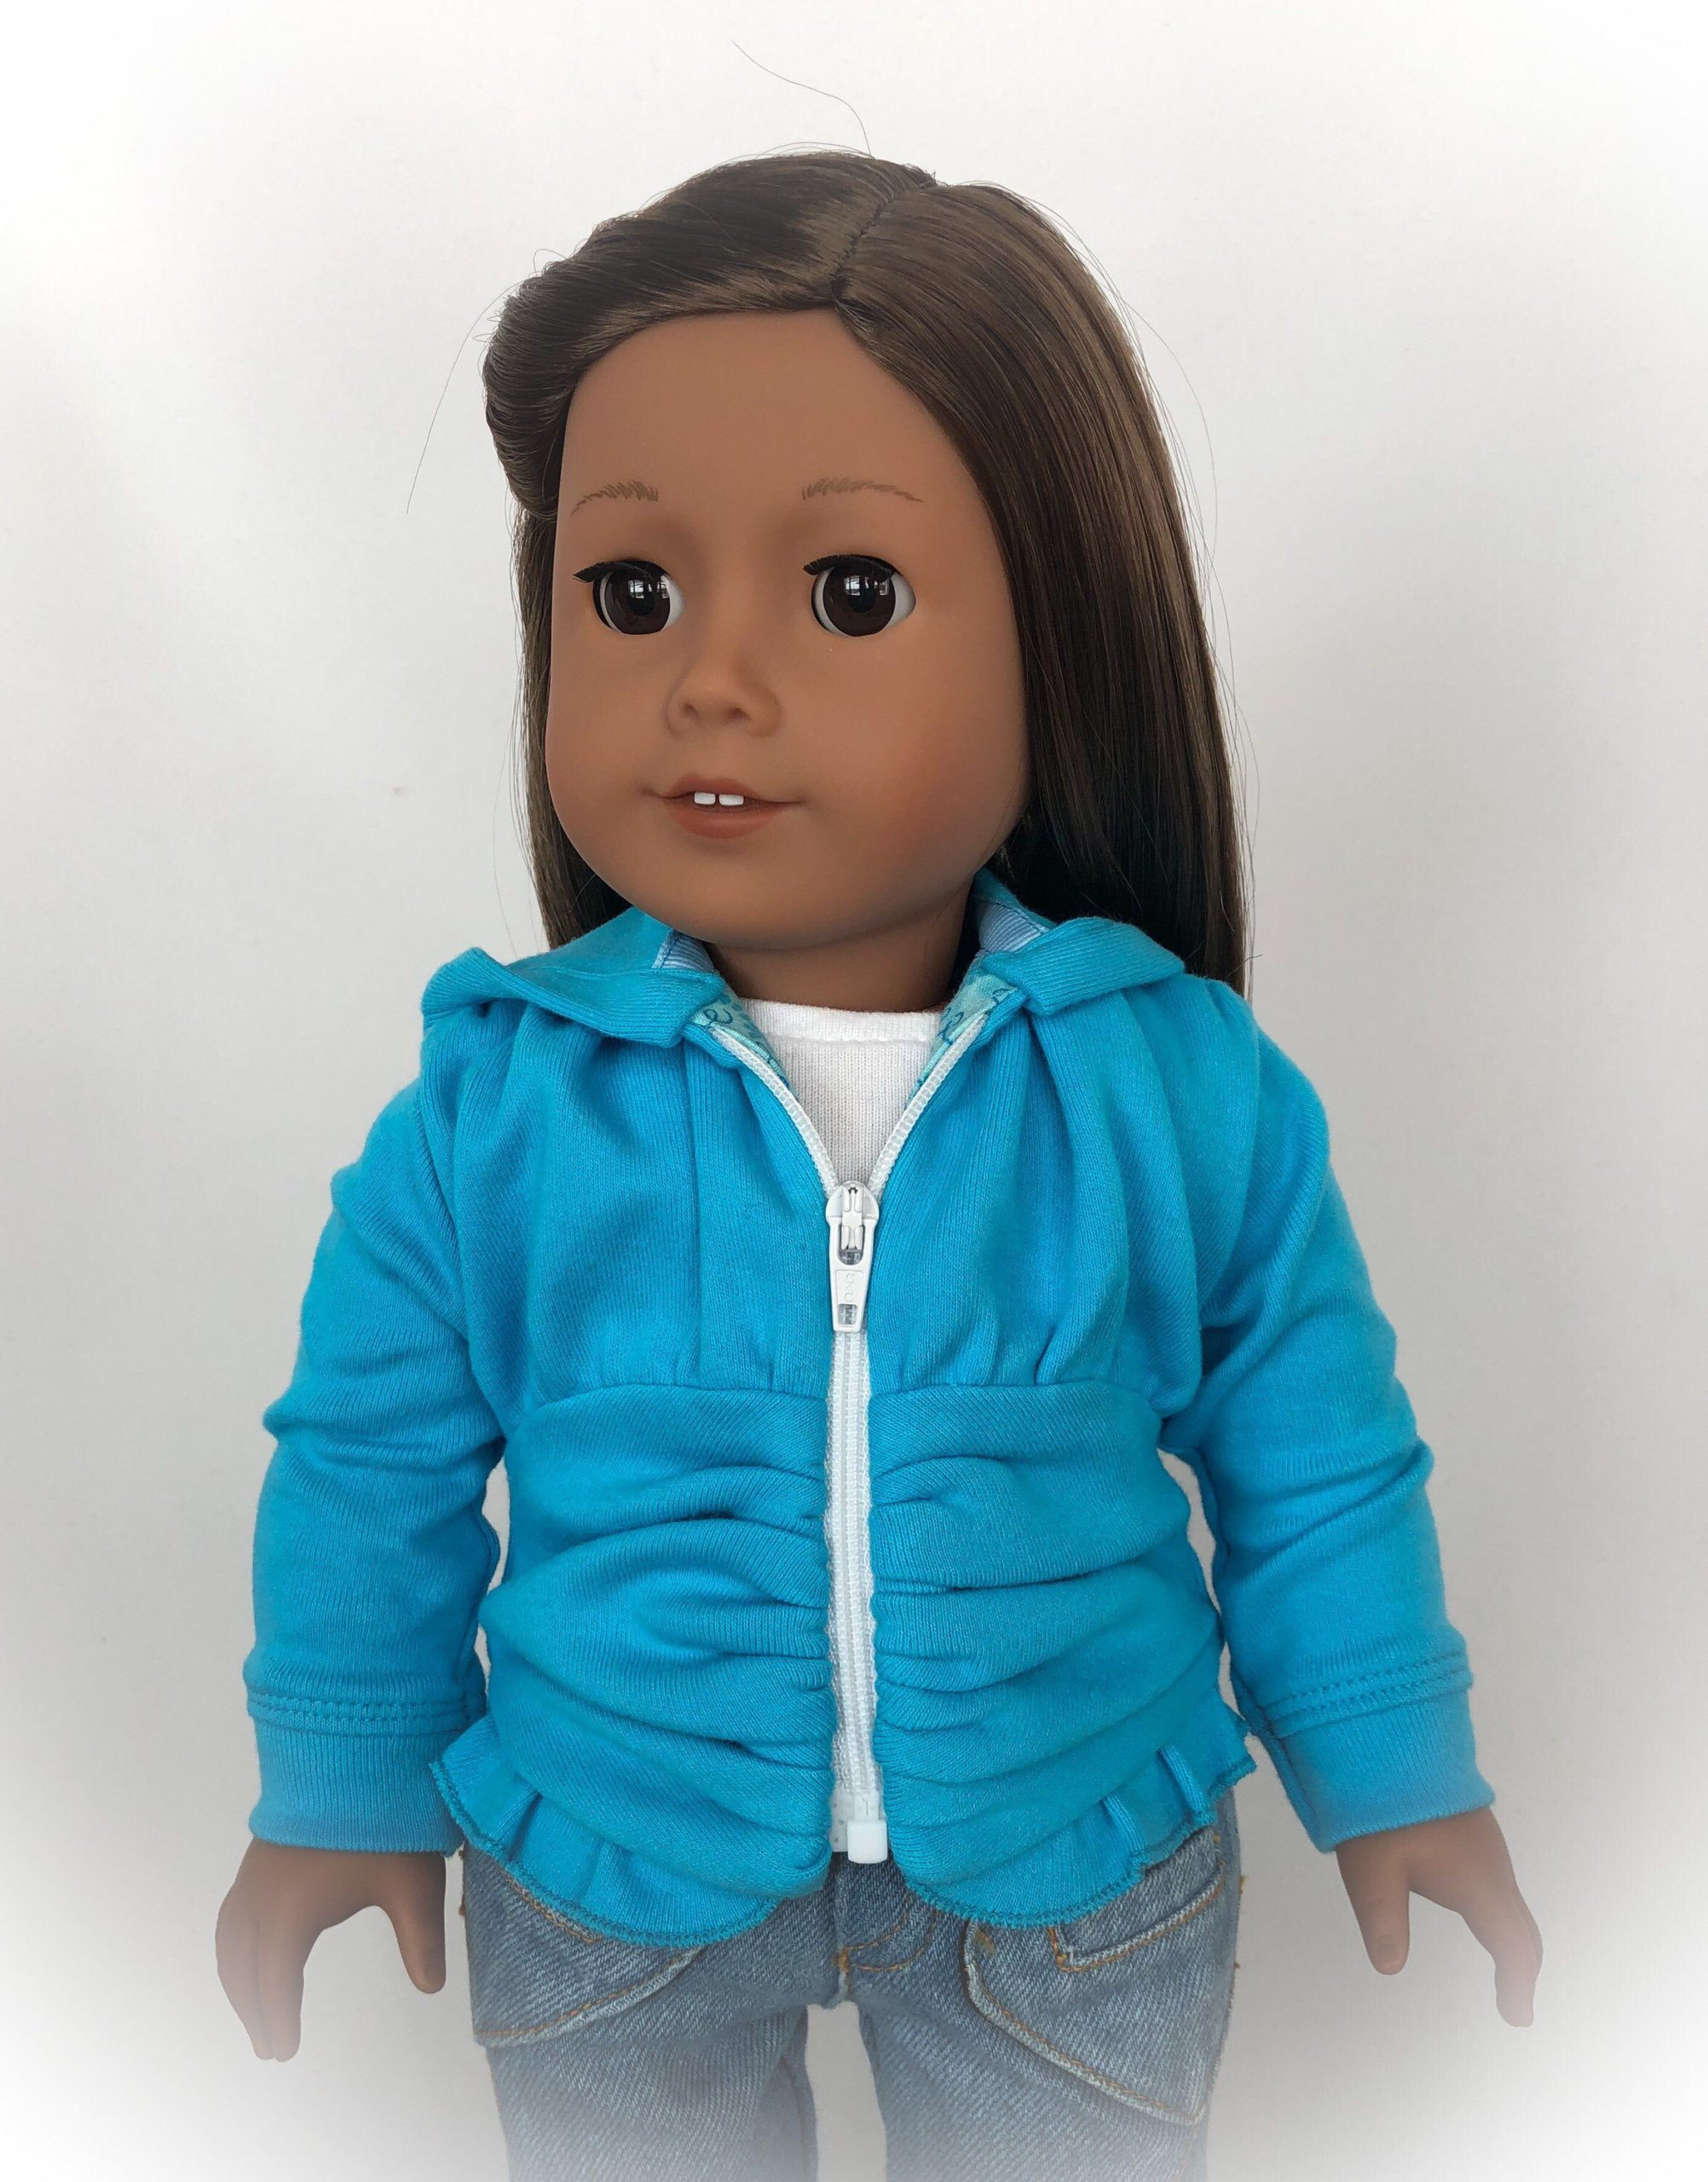 """American Girl Doll Clothes, 18"""" Doll Clothes, Hoodie, Jacket, 18"""" Doll Accessory, Hooded Sweatshirt Jacket - by BringingJoyBoutique"""